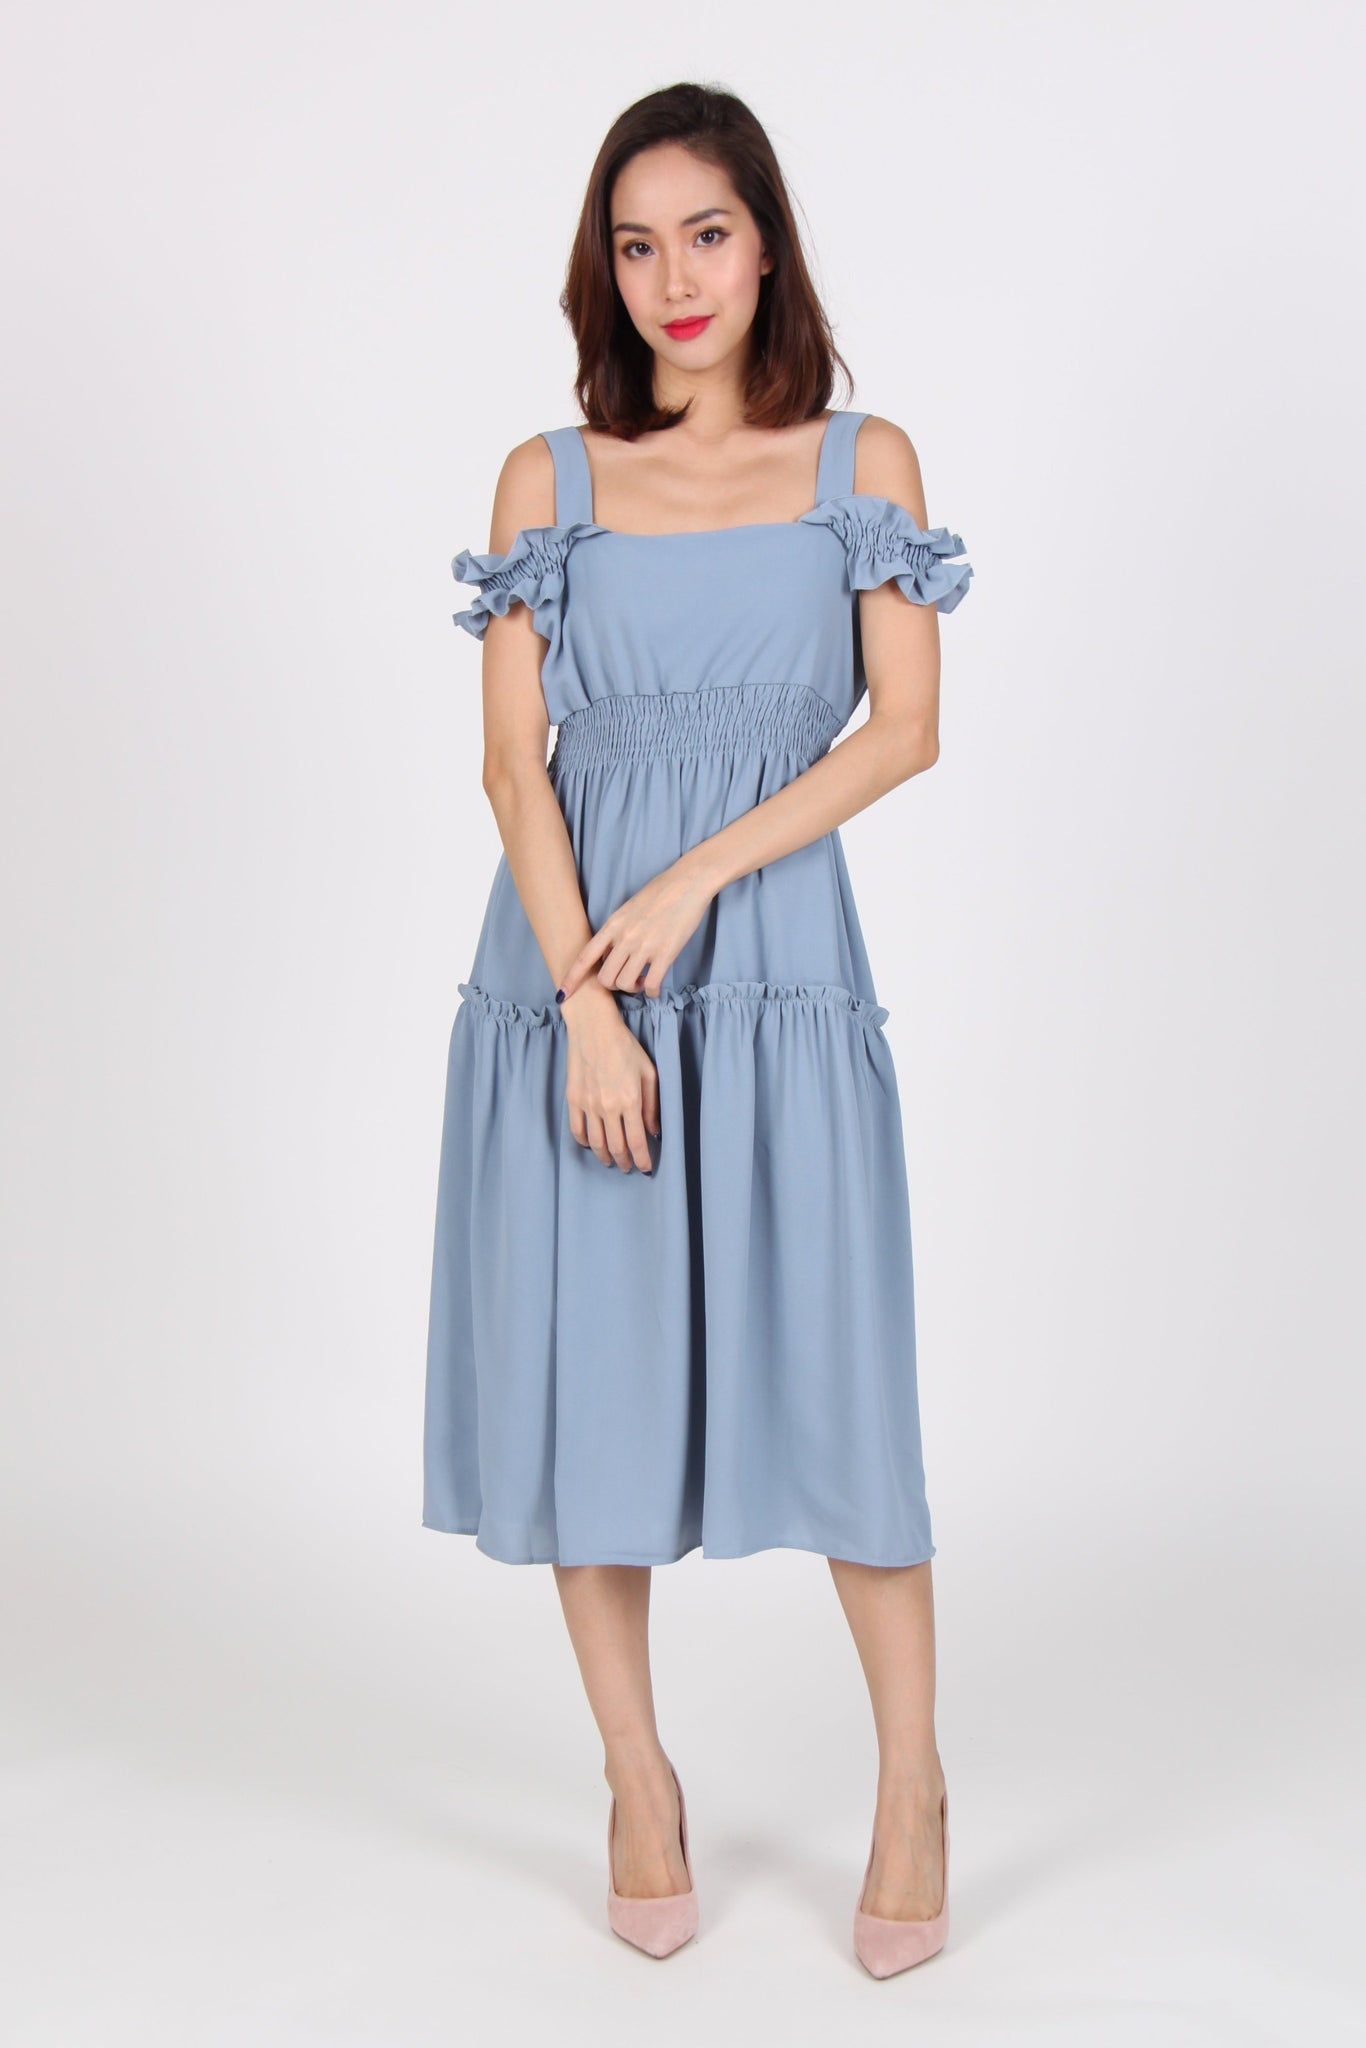 Cold Shoulder Ruffles Gypsy Dress in Blue